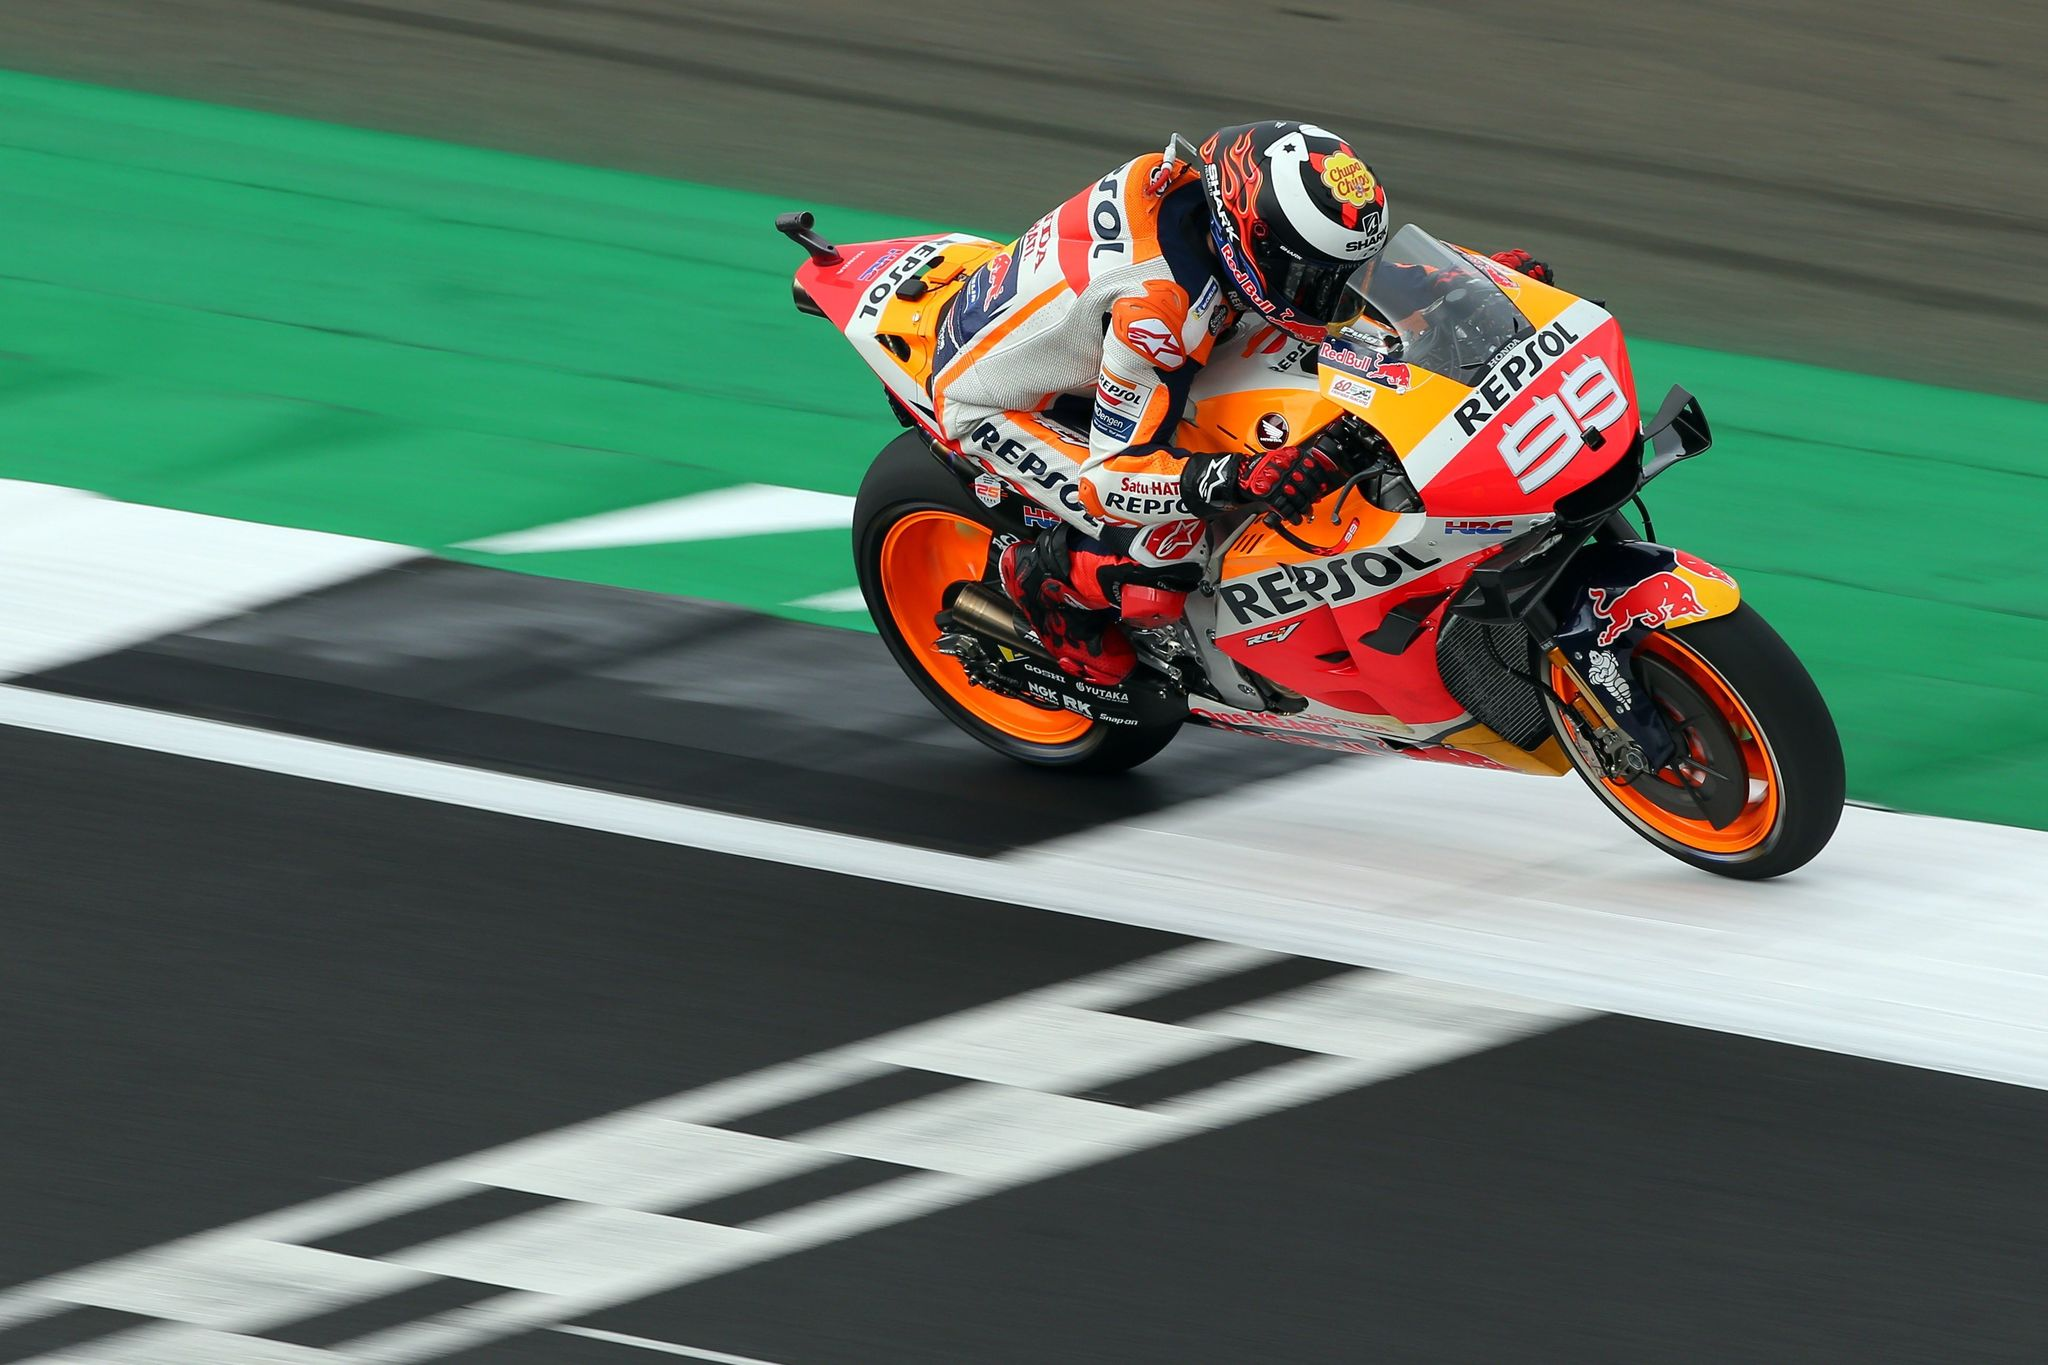 Northampton (United Kingdom), 23/08/2019.- Spanish MotoGP rider <HIT>Jorge</HIT><HIT>Lorenzo</HIT> of Repsol Honda Team in action during the free practice session of the 2019 Motorcycling Grand Prix of Britain at the Silverstone race track, Northampton, Britain, 23 August 2019. (Motociclismo, Ciclismo, Reino Unido) EFE/EPA/TIM KEETON